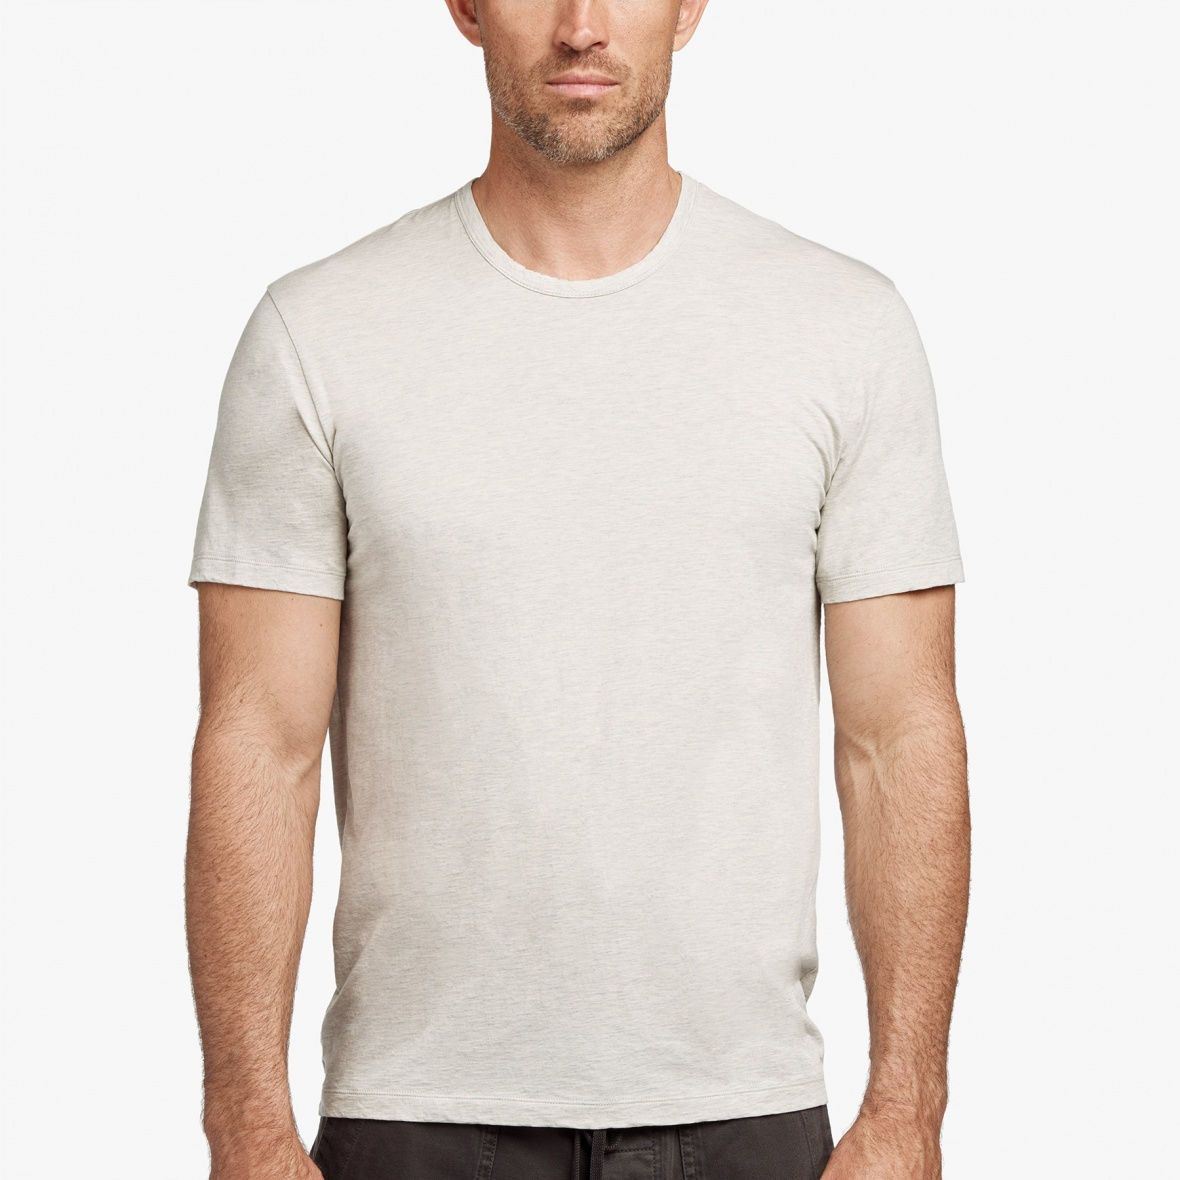 bc970fe8a26f 13 Best T-Shirts for Men 2019 - V-necks